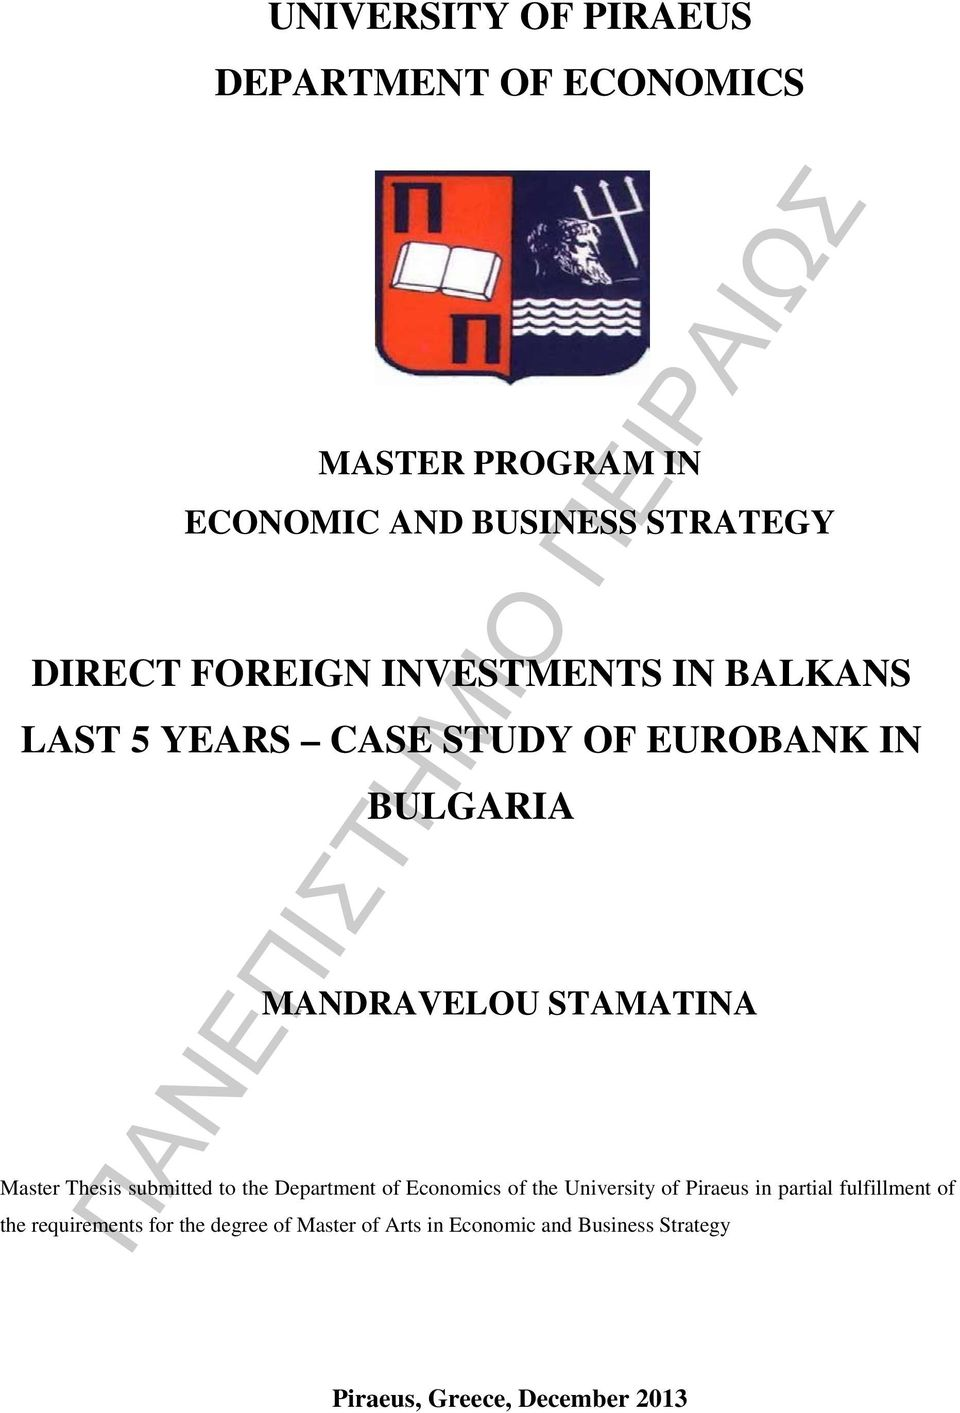 Thesis submitted to the Department of Economics of the University of Piraeus in partial fulfillment of the